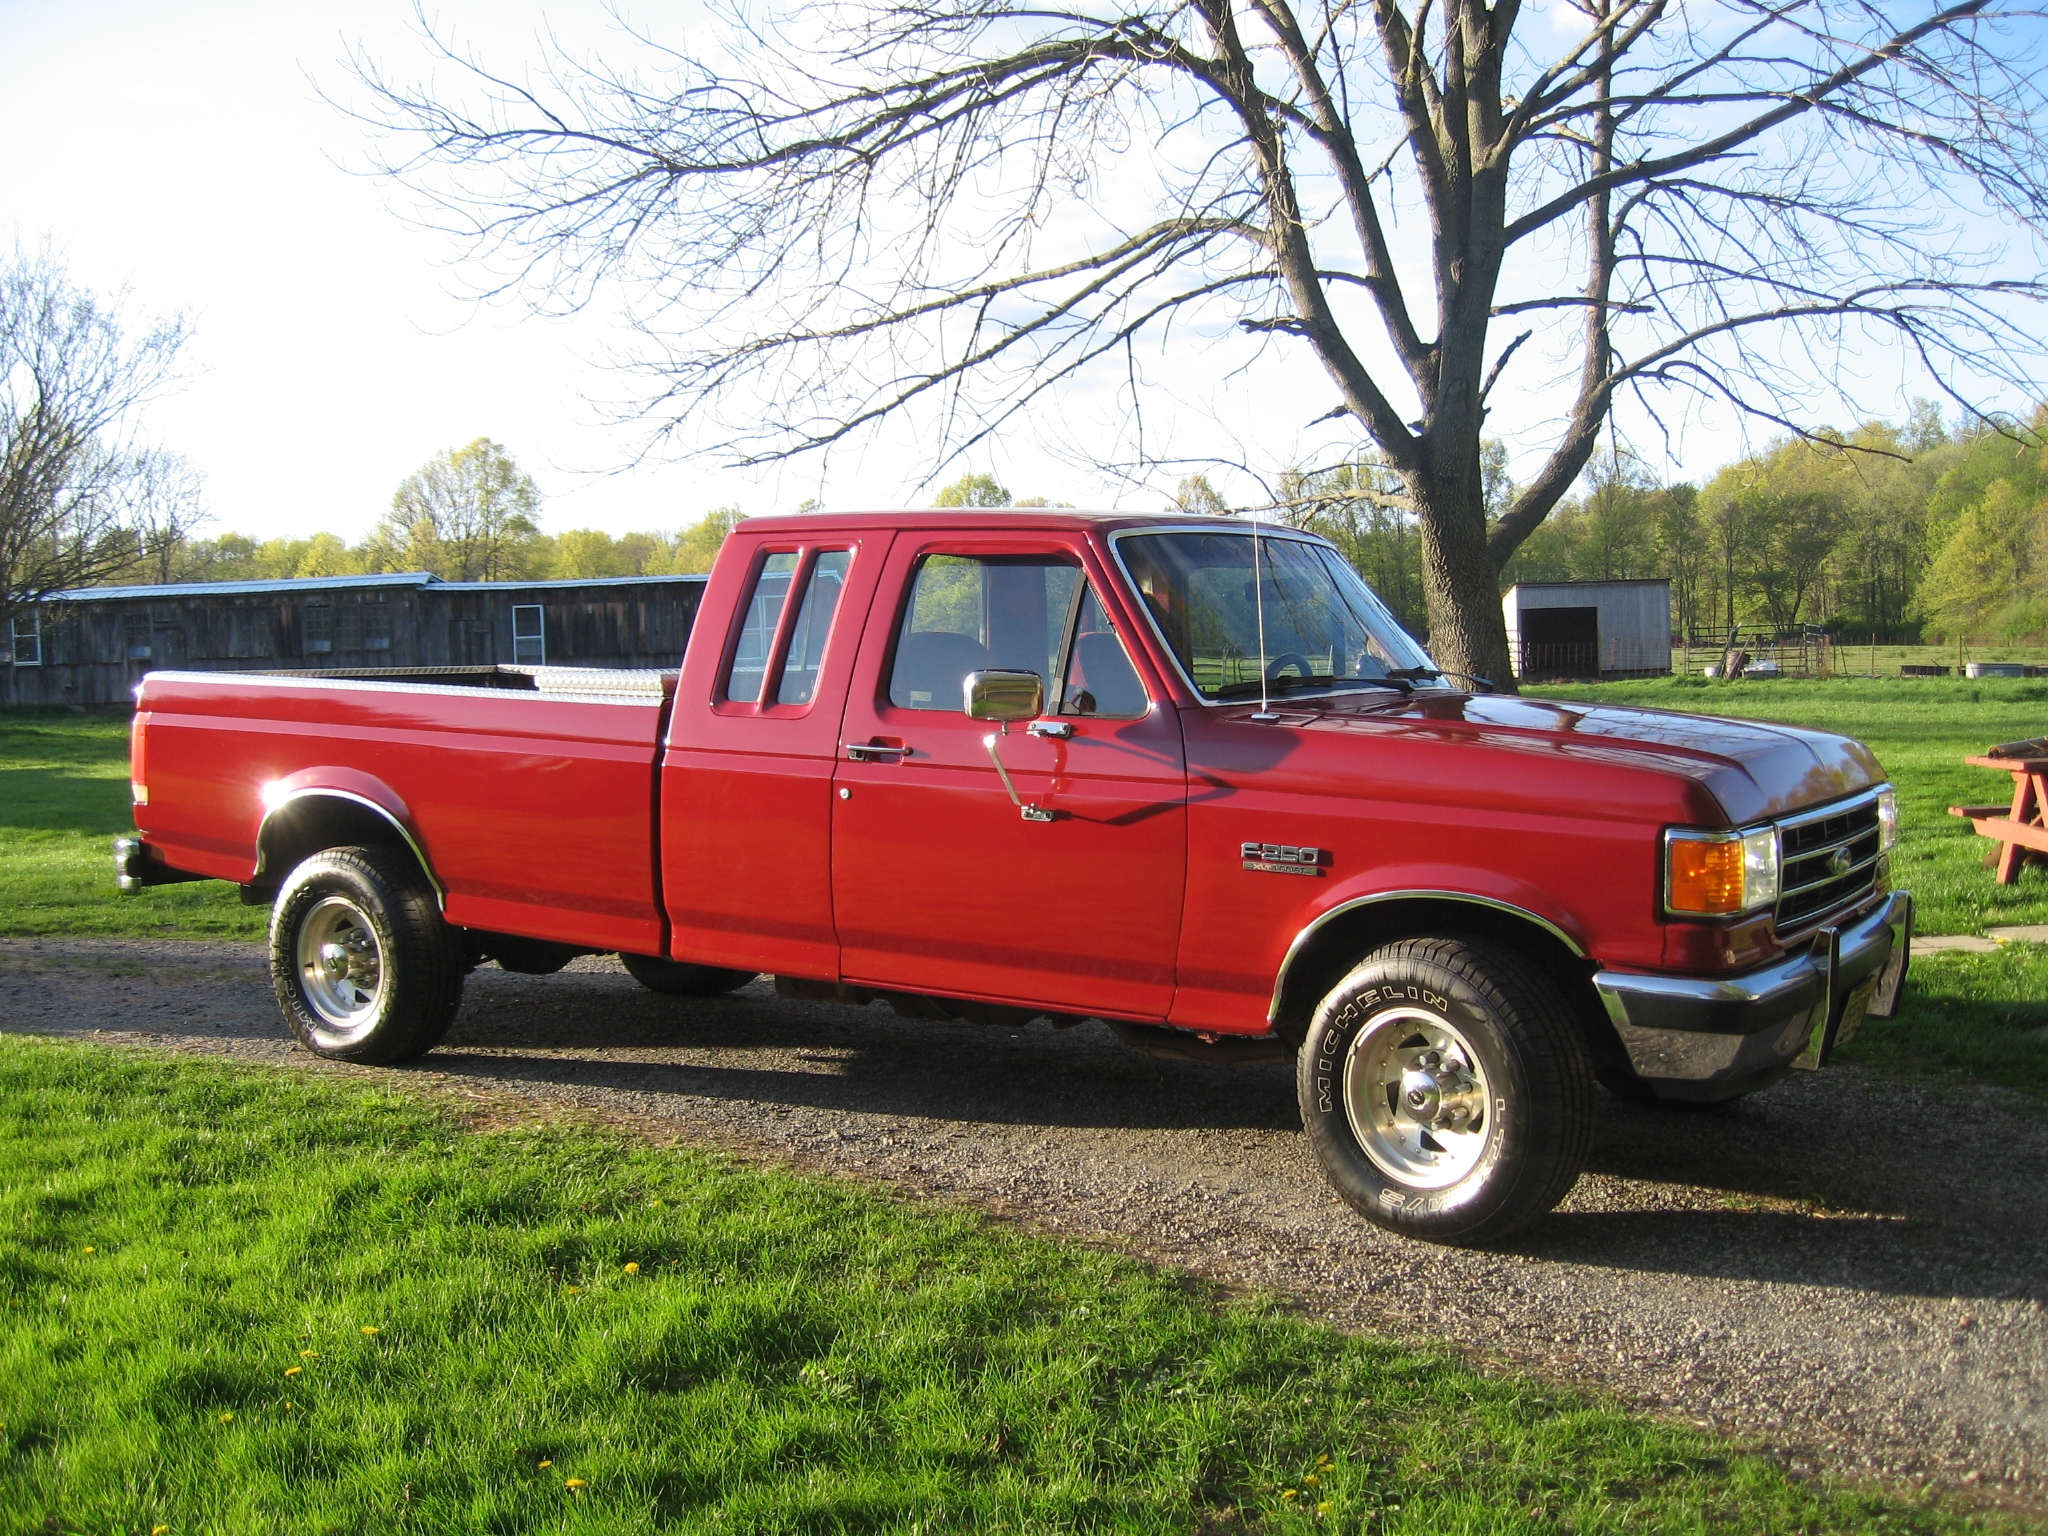 Bully 460 1991 Ford F150 Regular Cab Specs Photos Modification 1988 F 150 Basic Ignition Wiring 4 9 300 1990